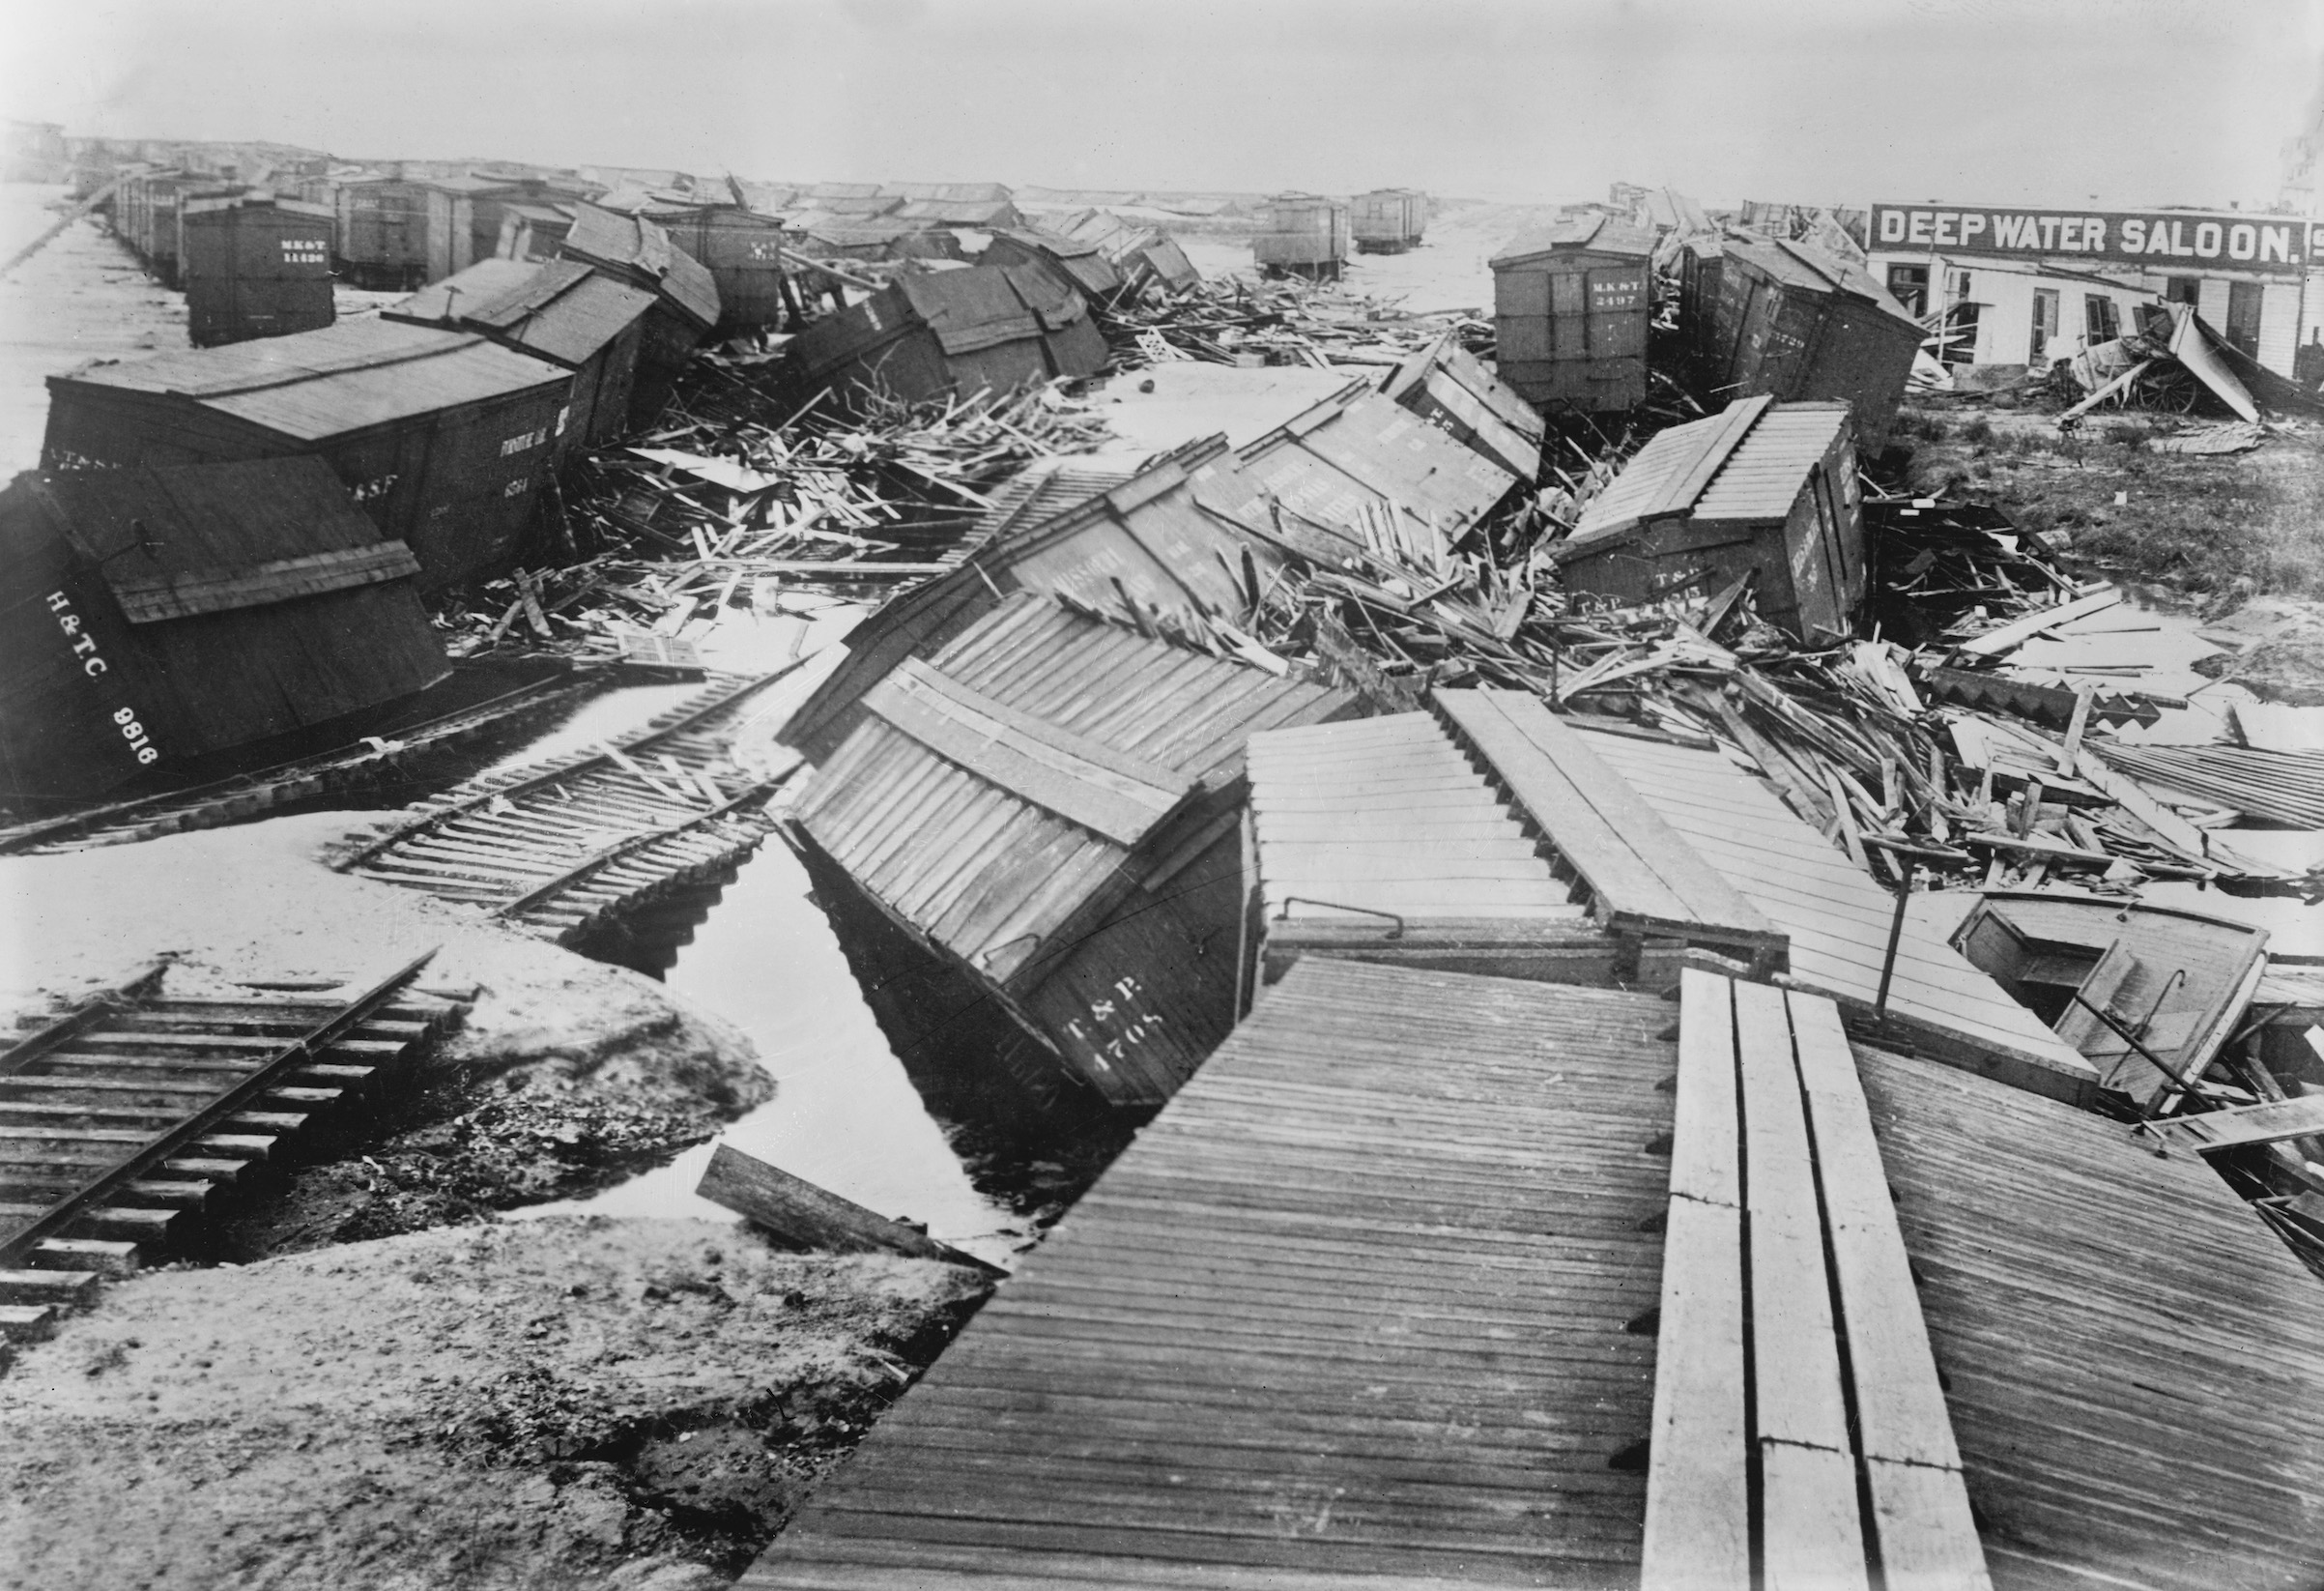 Destruction in Galveston, Texas, after the great hurricane of 1900.